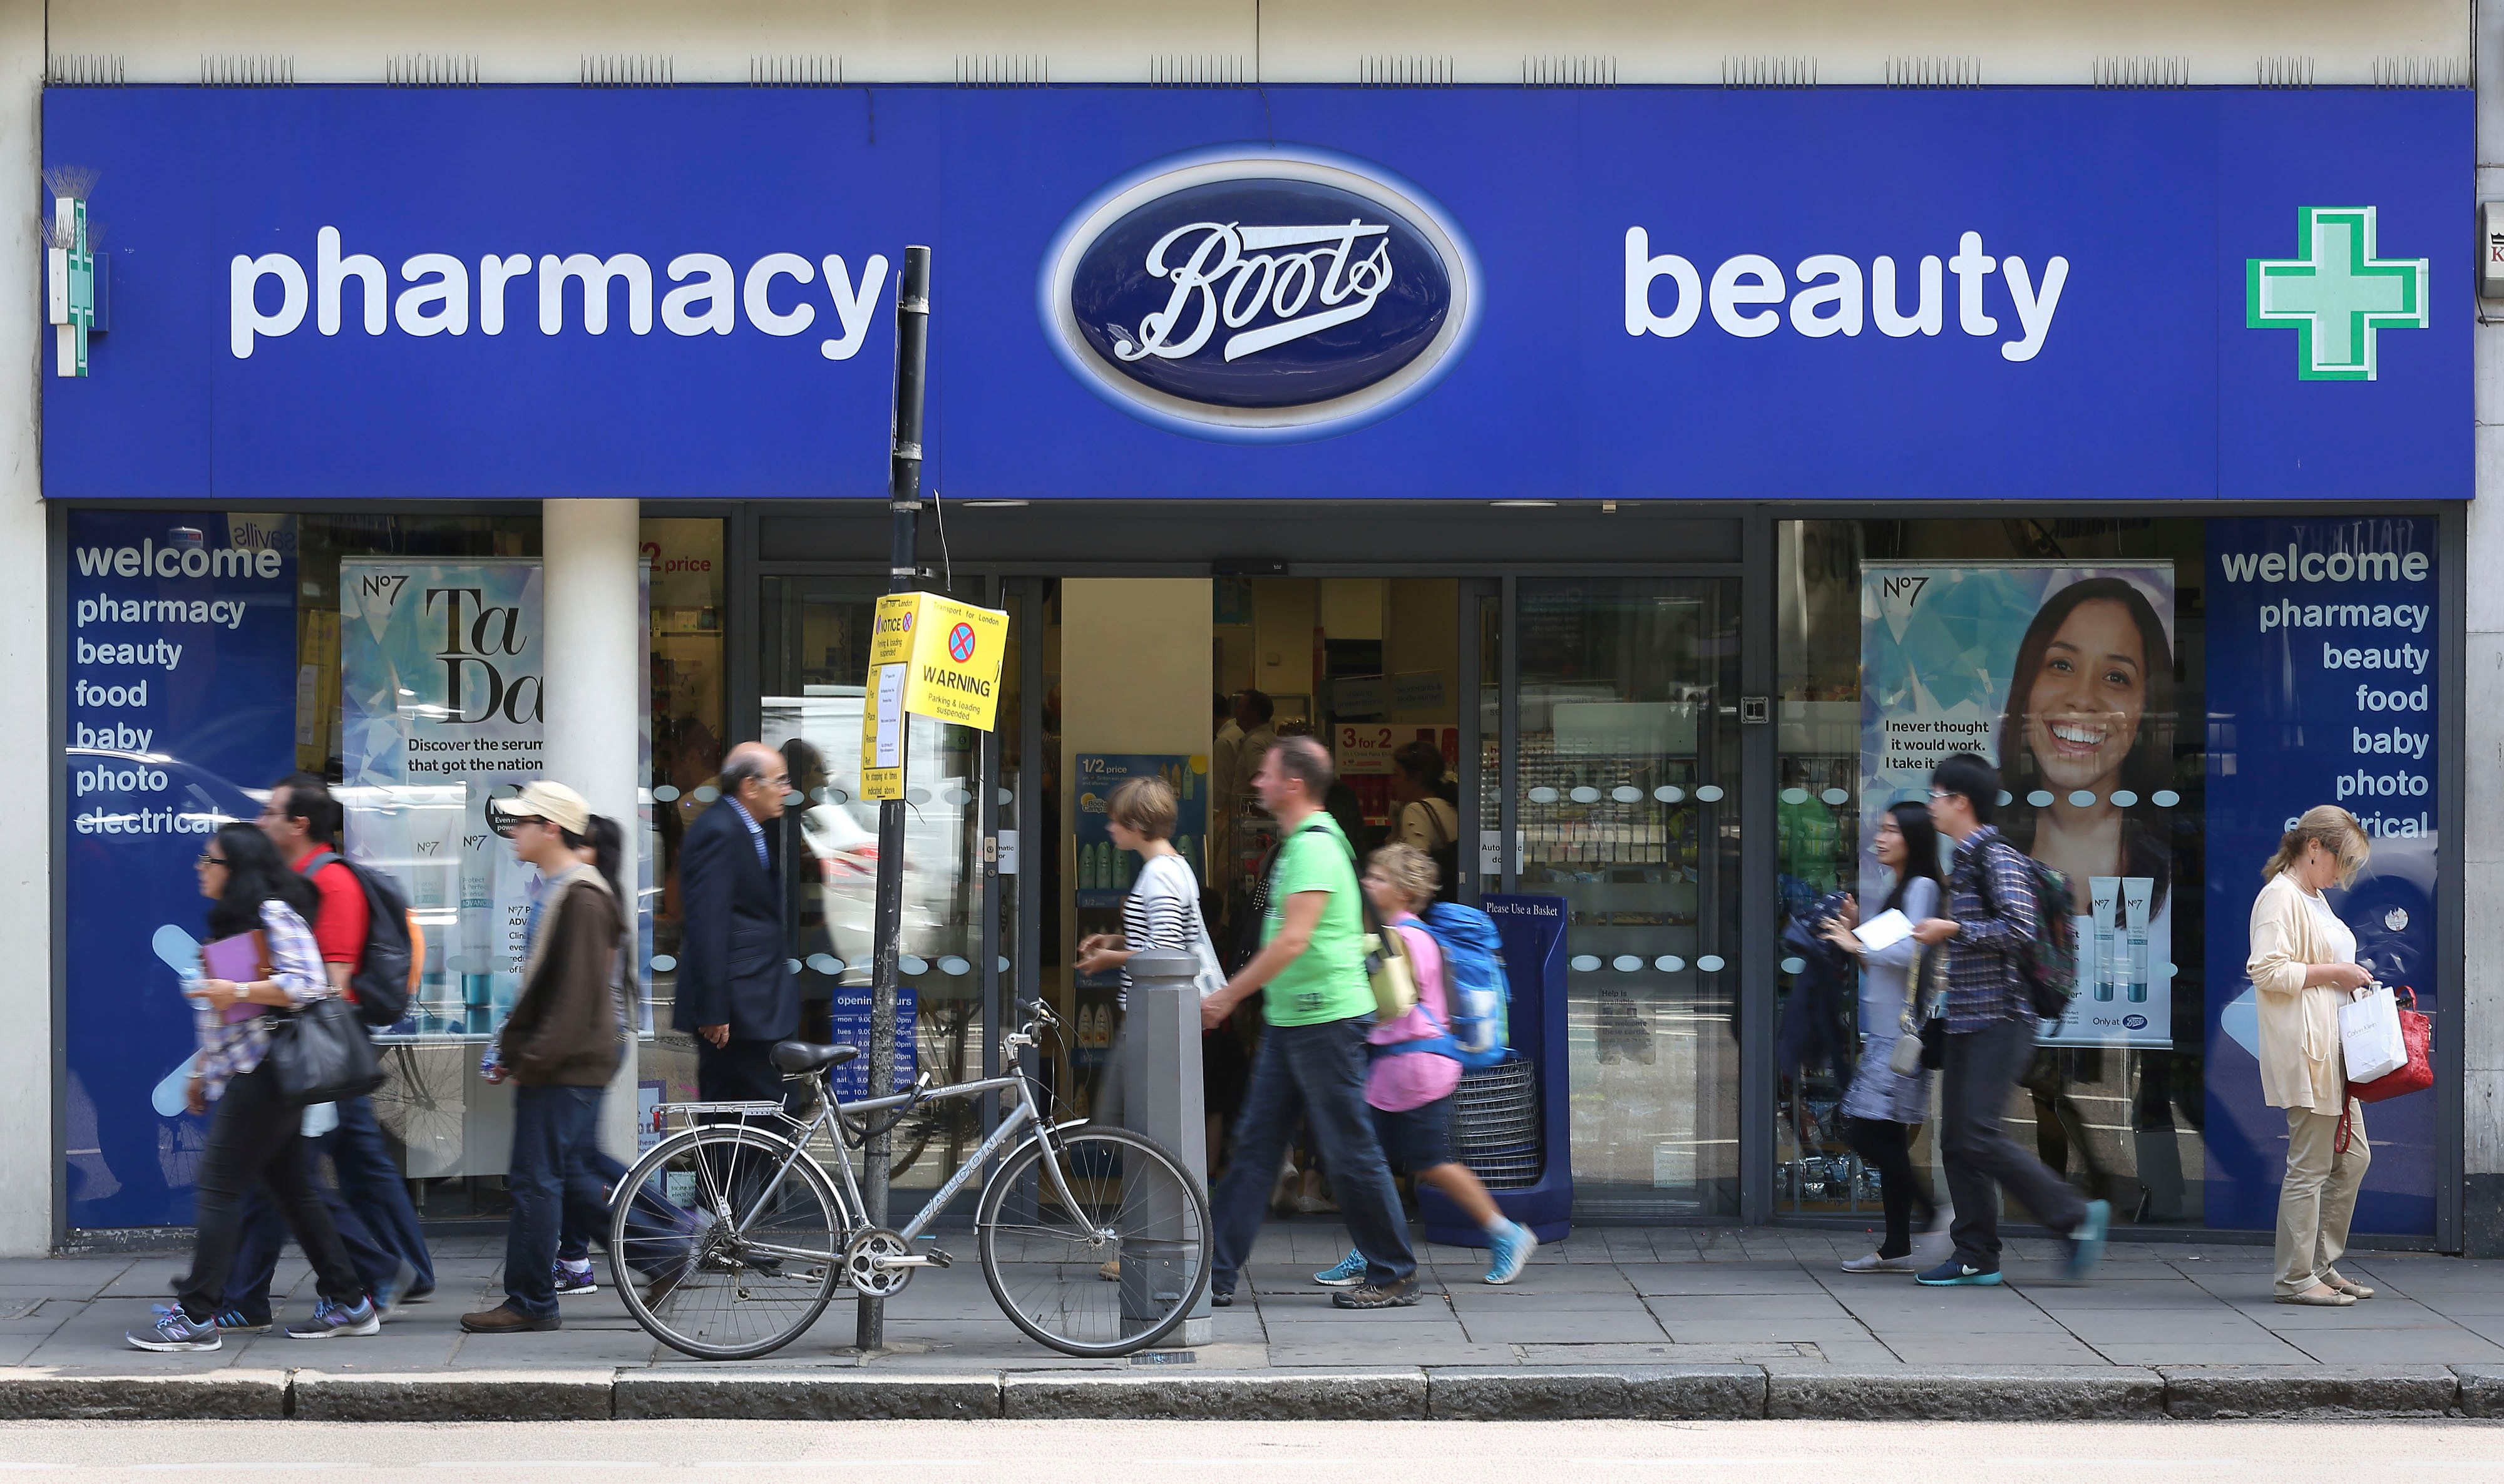 Boots Sent Charity Legal Letter For Campaigning To Make Morning After Pill